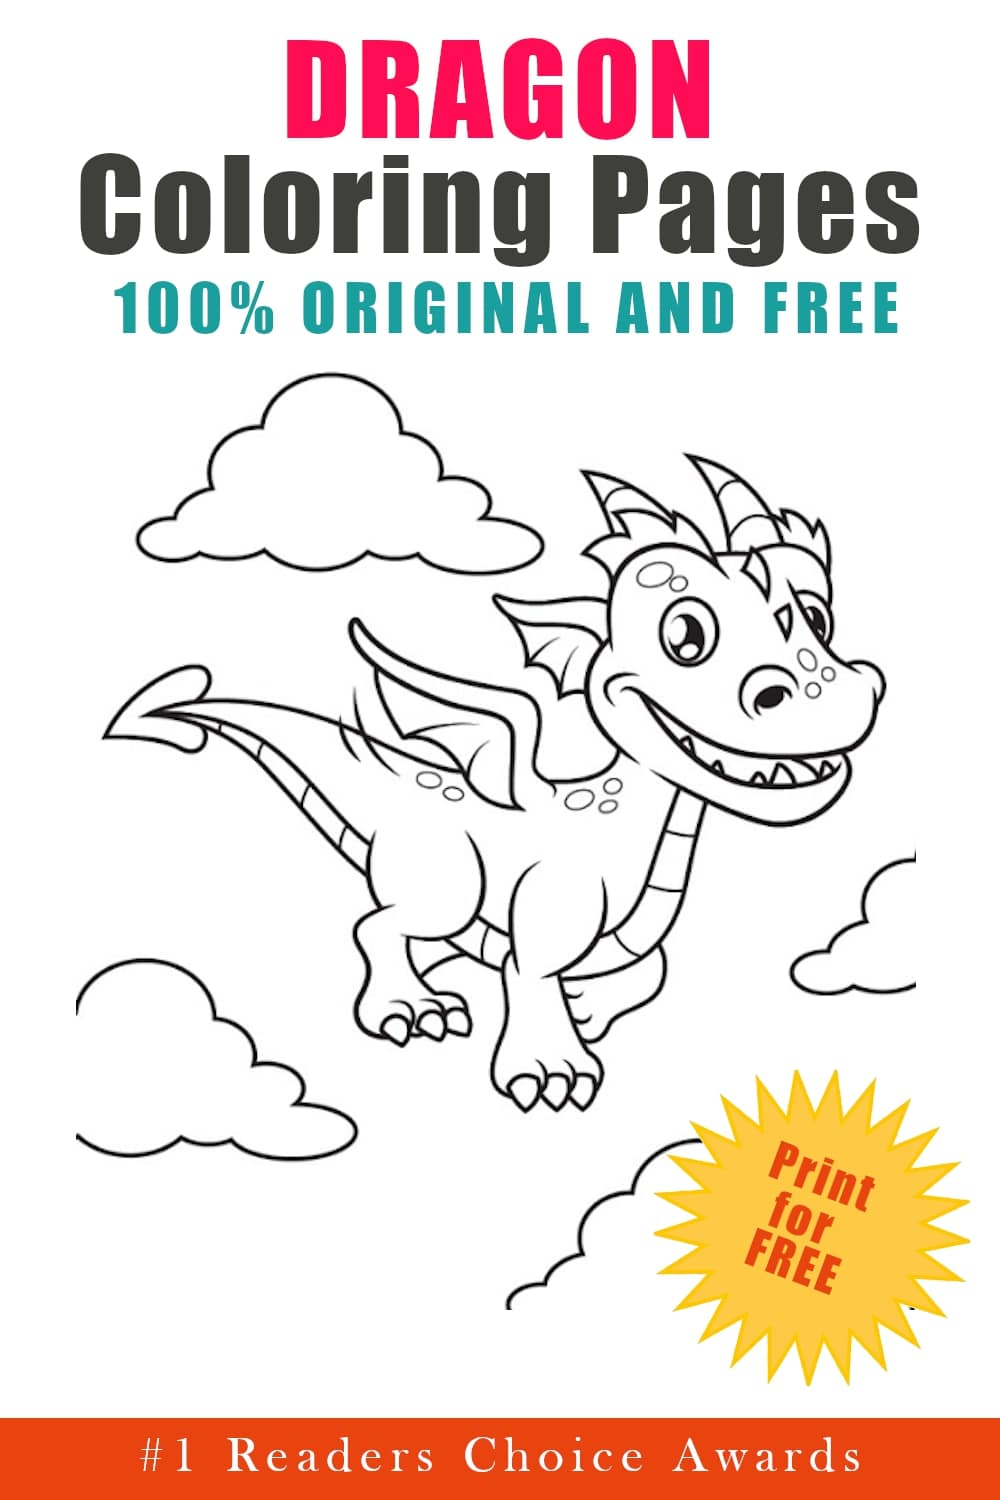 original and free dragon coloring pages